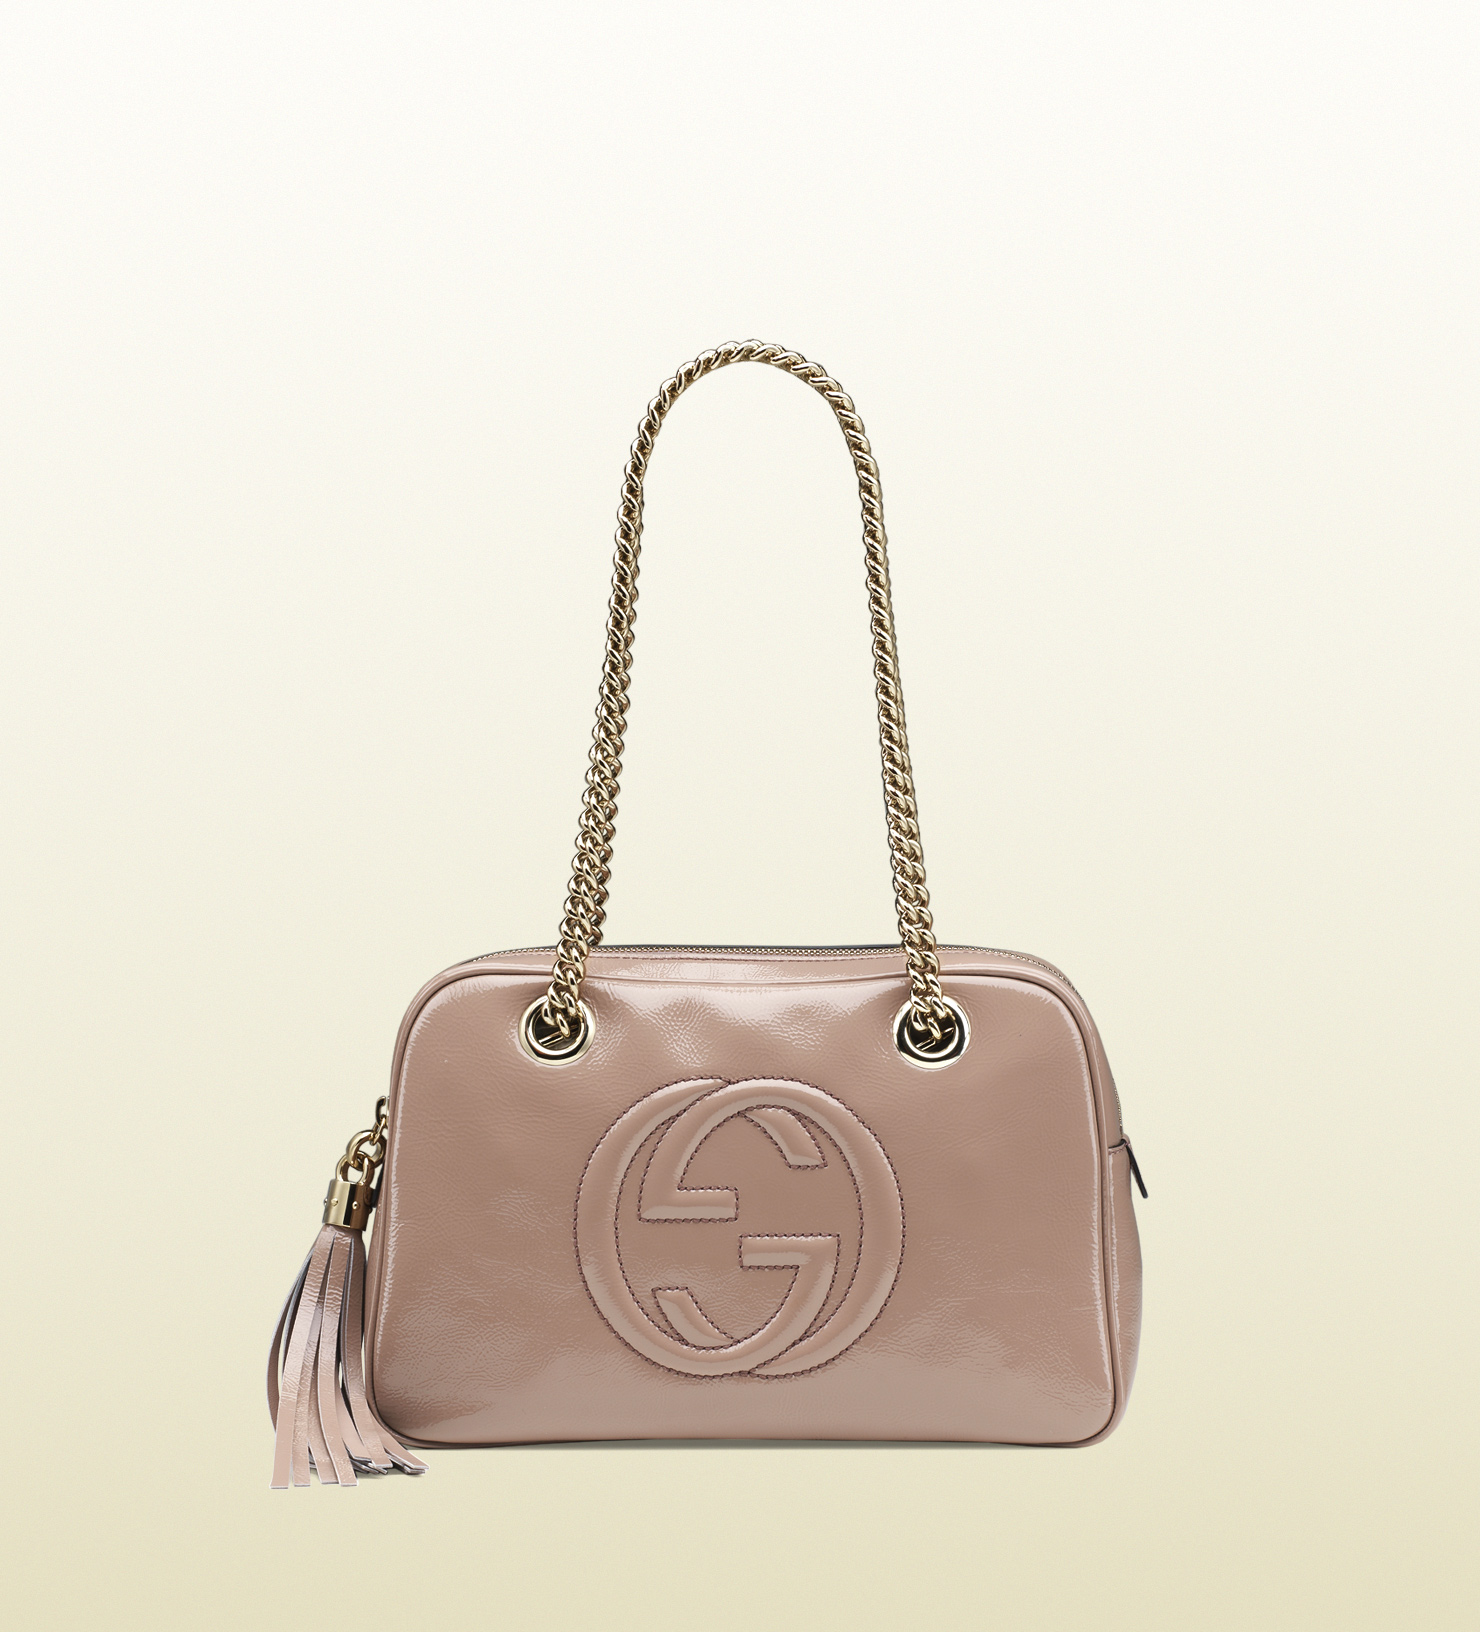 a00b8d7edb8d8 Lyst - Gucci Soho Patent Leather Shoulder Bag in Pink